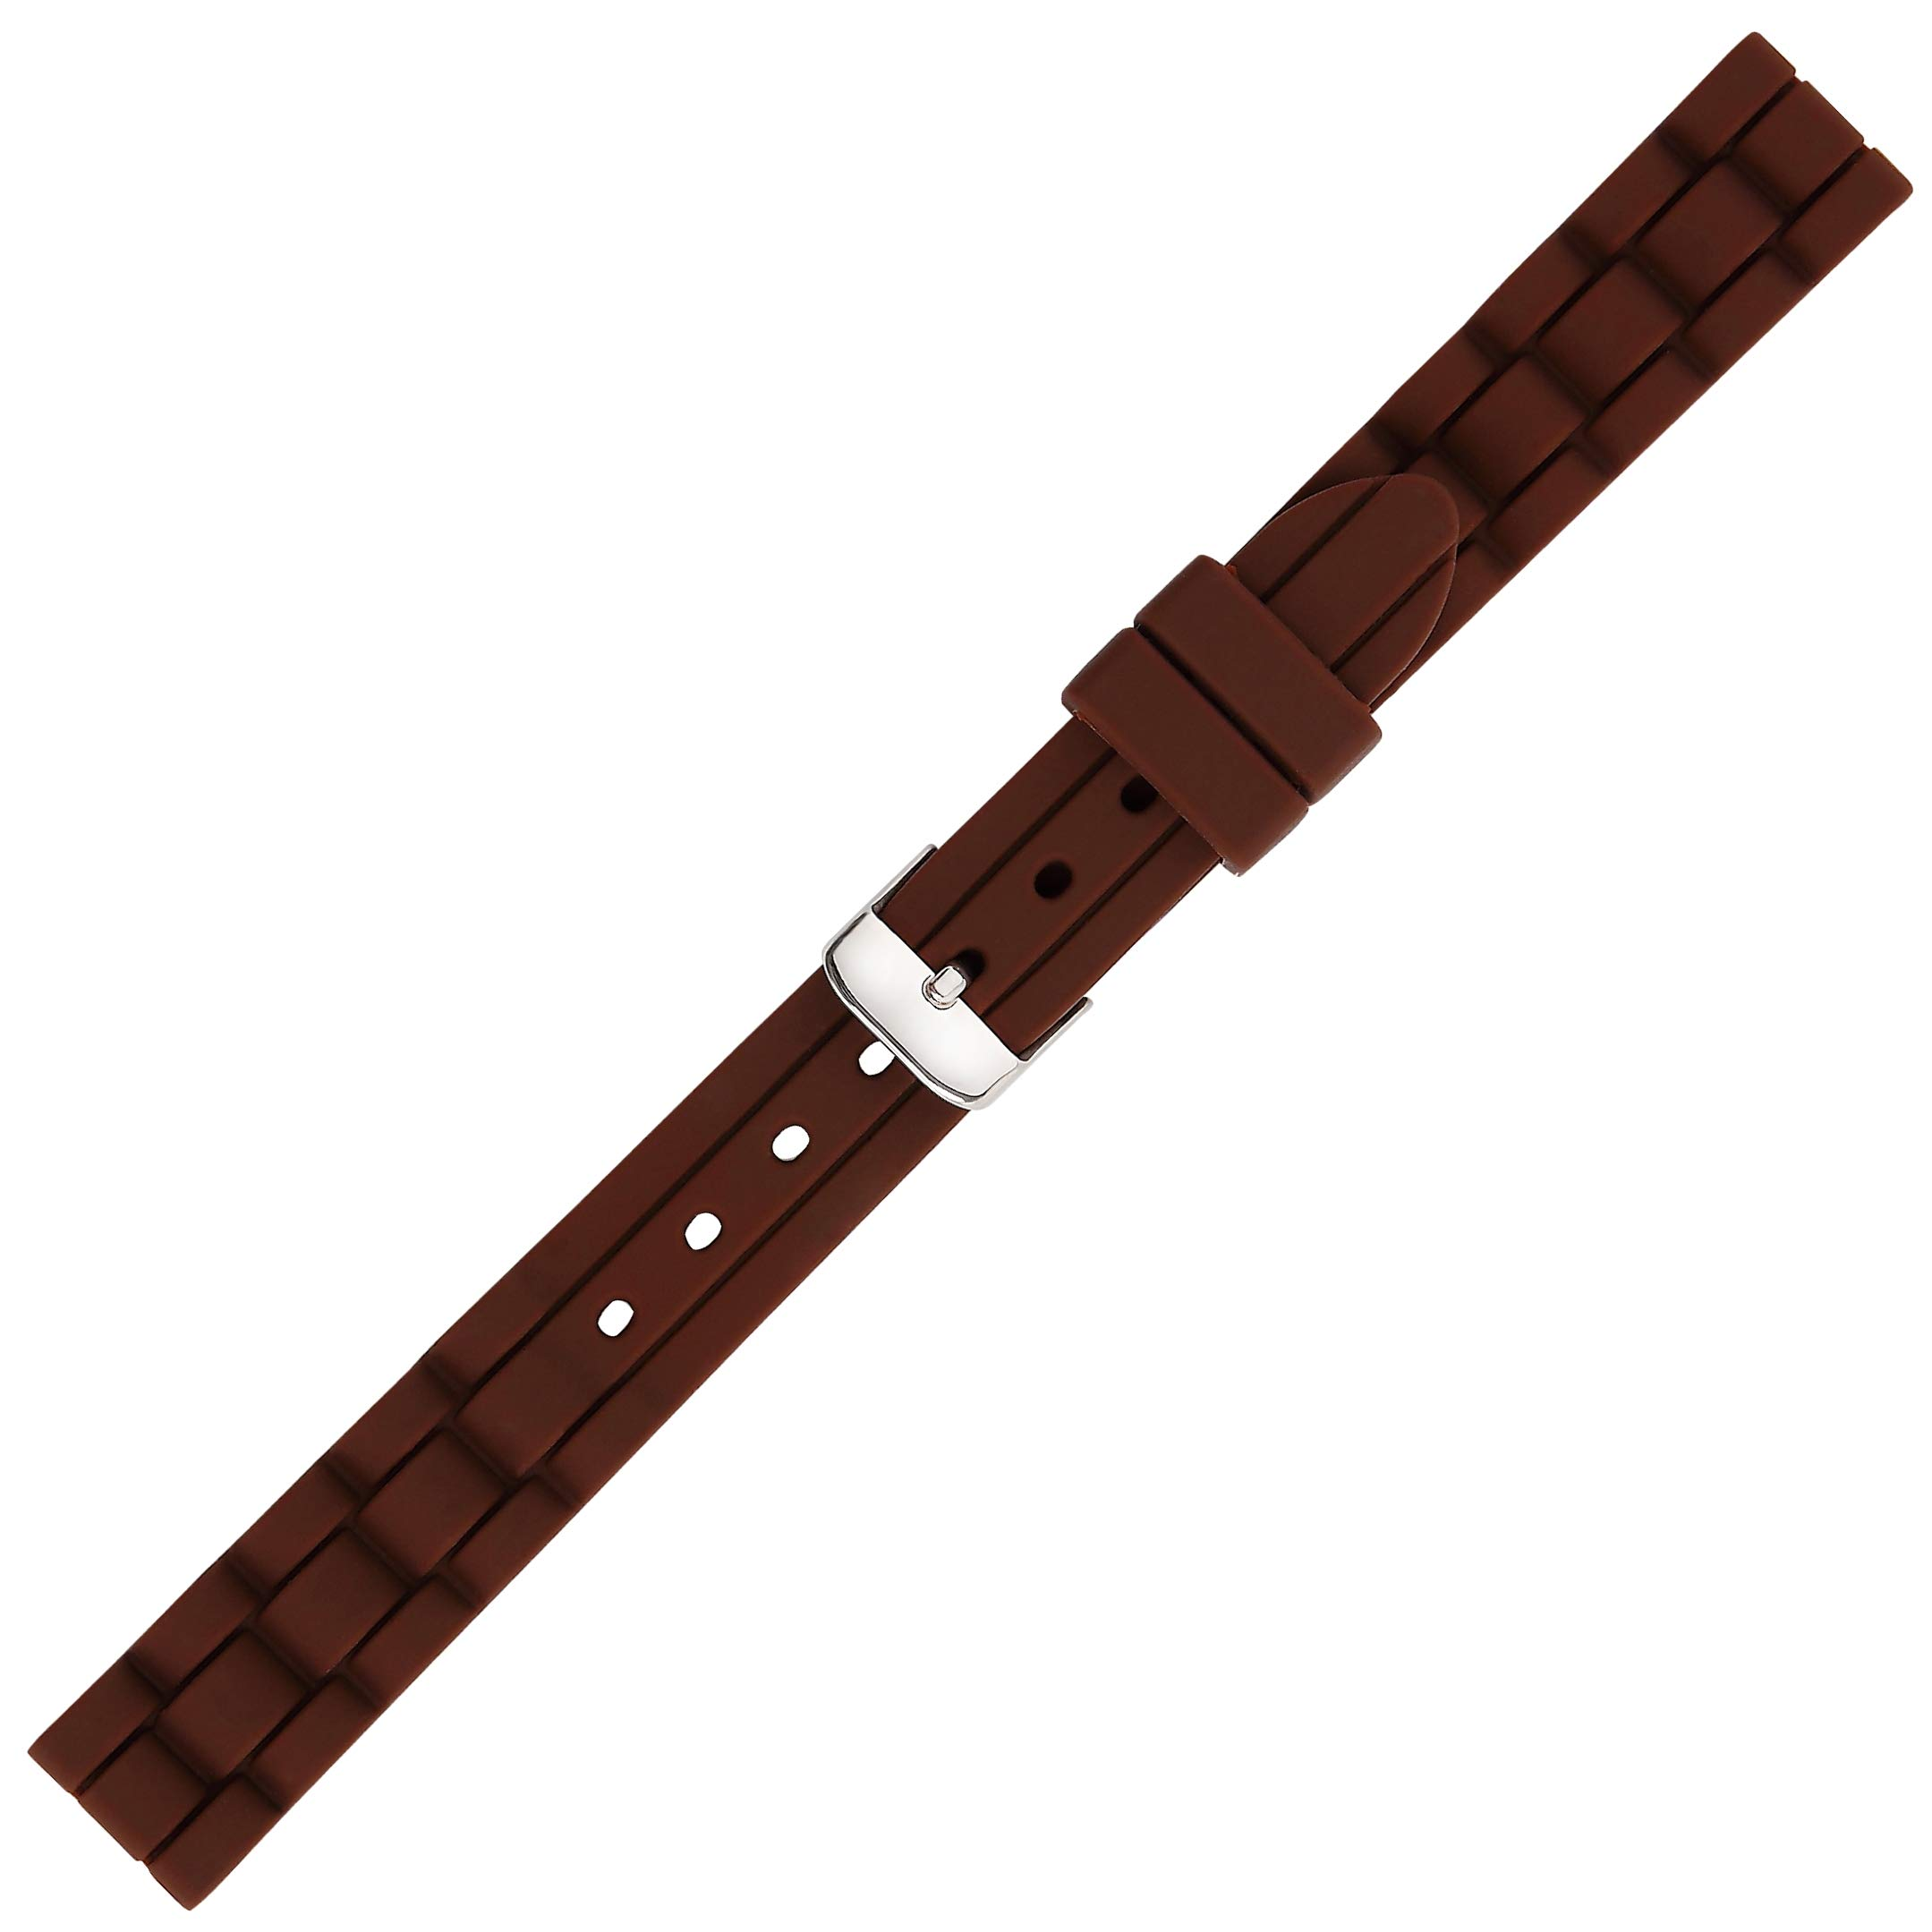 Kiiso Boy's and Girl's Textured Siicone Sports Watch Bands 14mm (Brown) by Kiiso